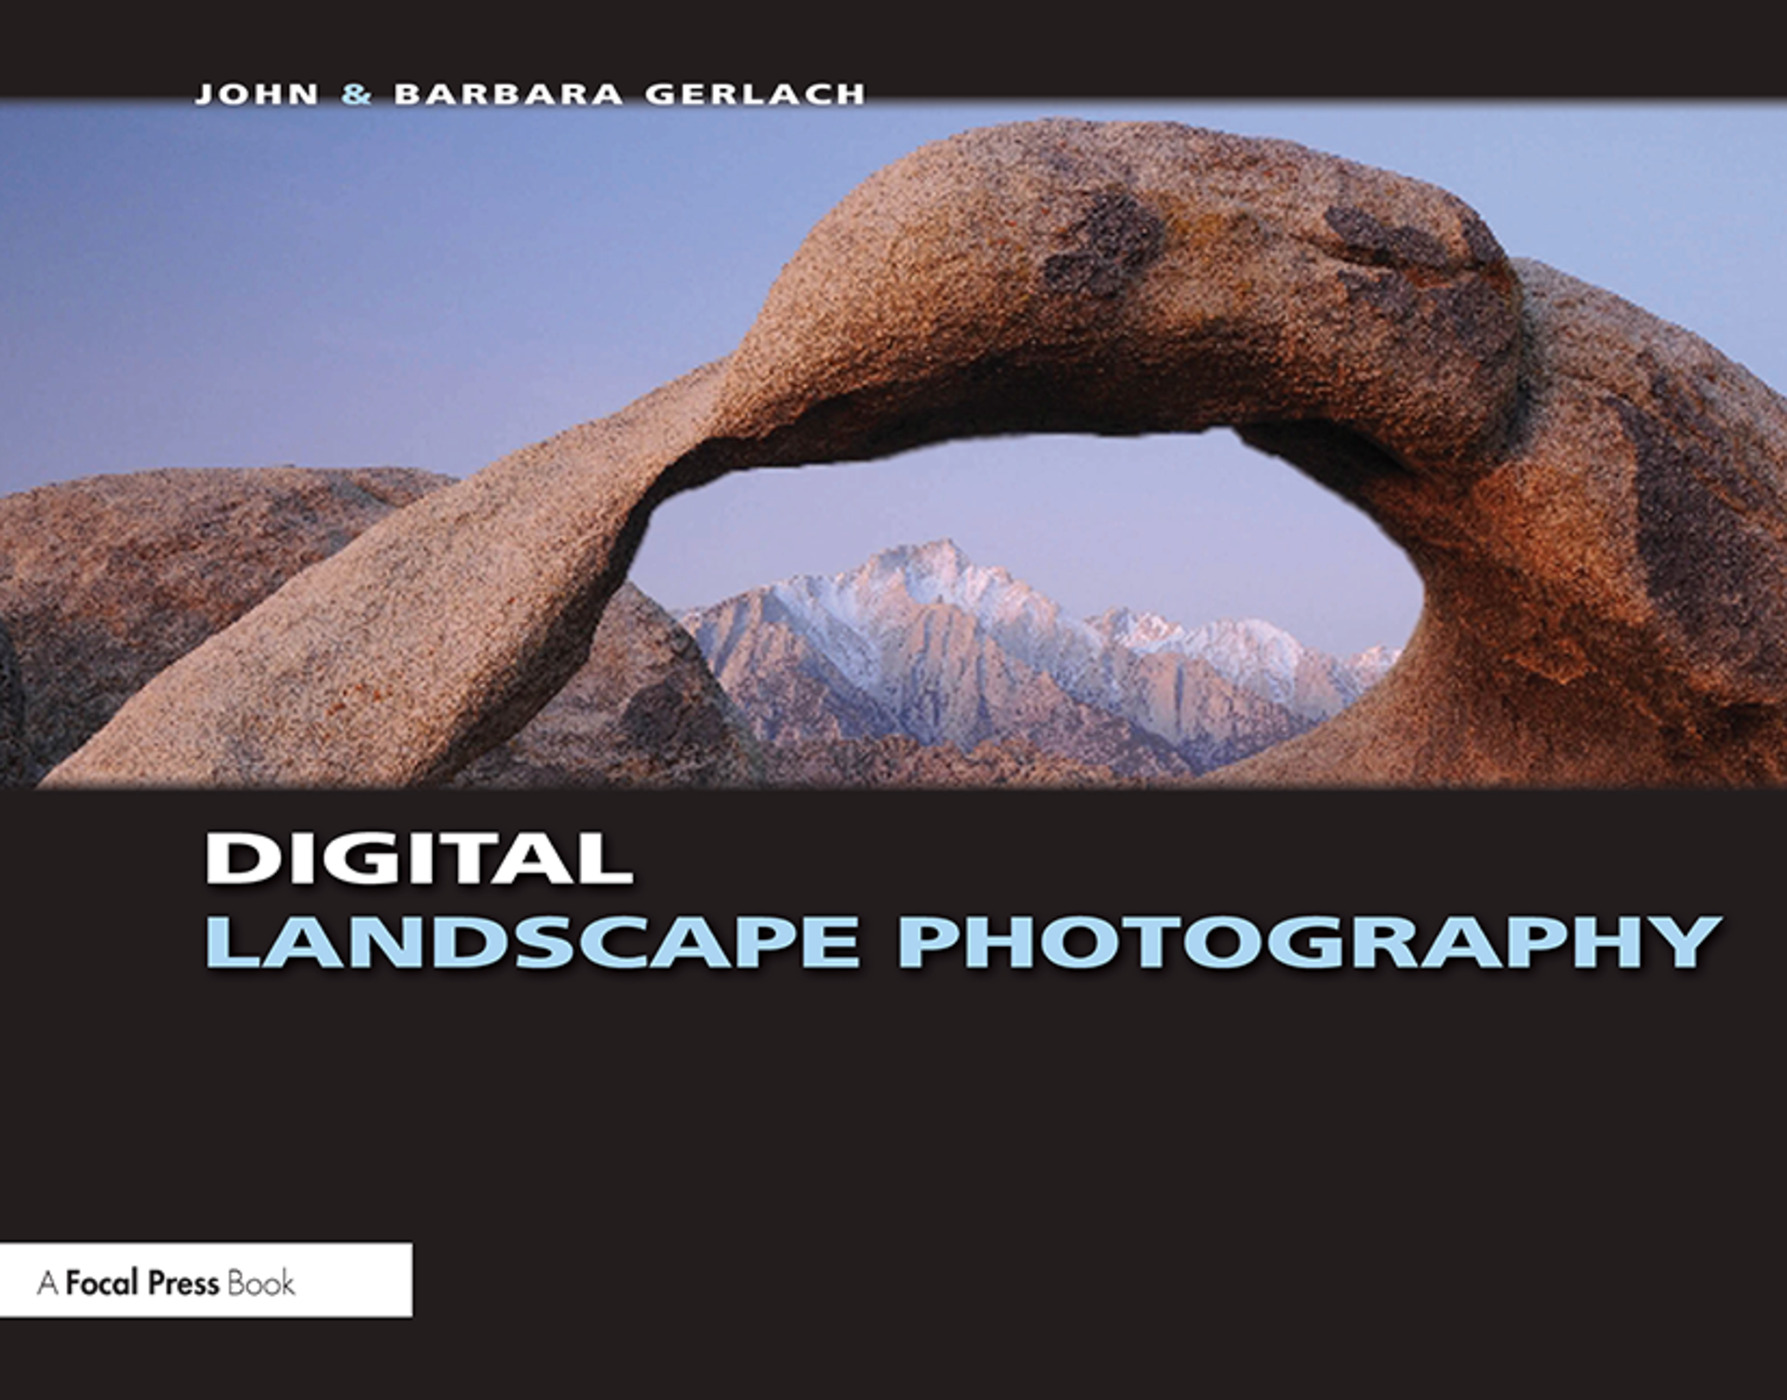 Digital Landscape Photography book cover